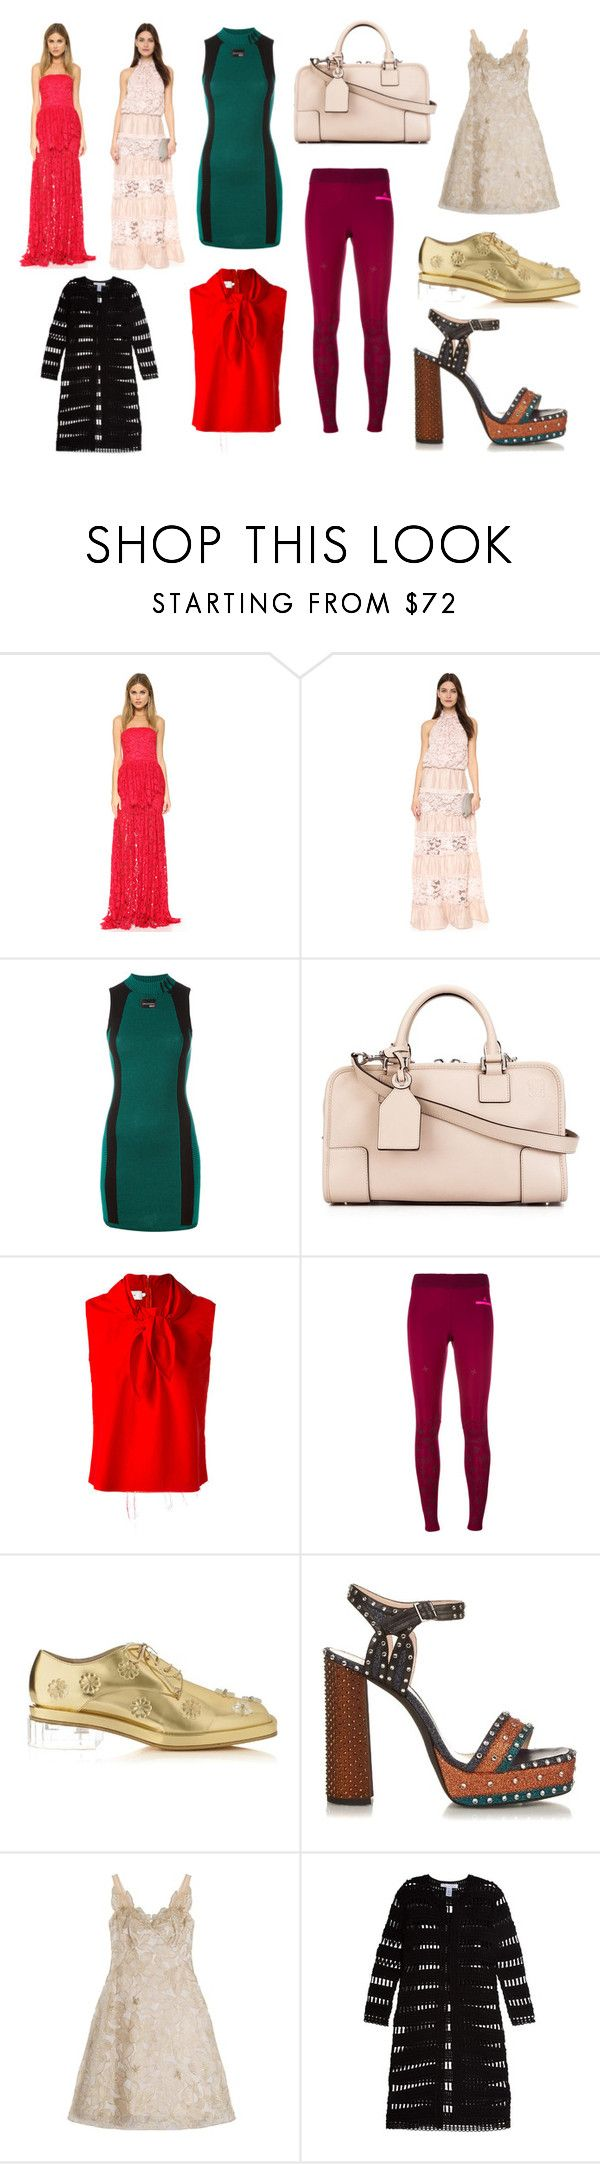 """Please Follow me"" by donna-wang1 ❤ liked on Polyvore featuring Alexis, adidas Originals, Loewe, Marques'Almeida, adidas, Simone Rocha, Lanvin, Notte by Marchesa, Oscar de la Renta and vintage"